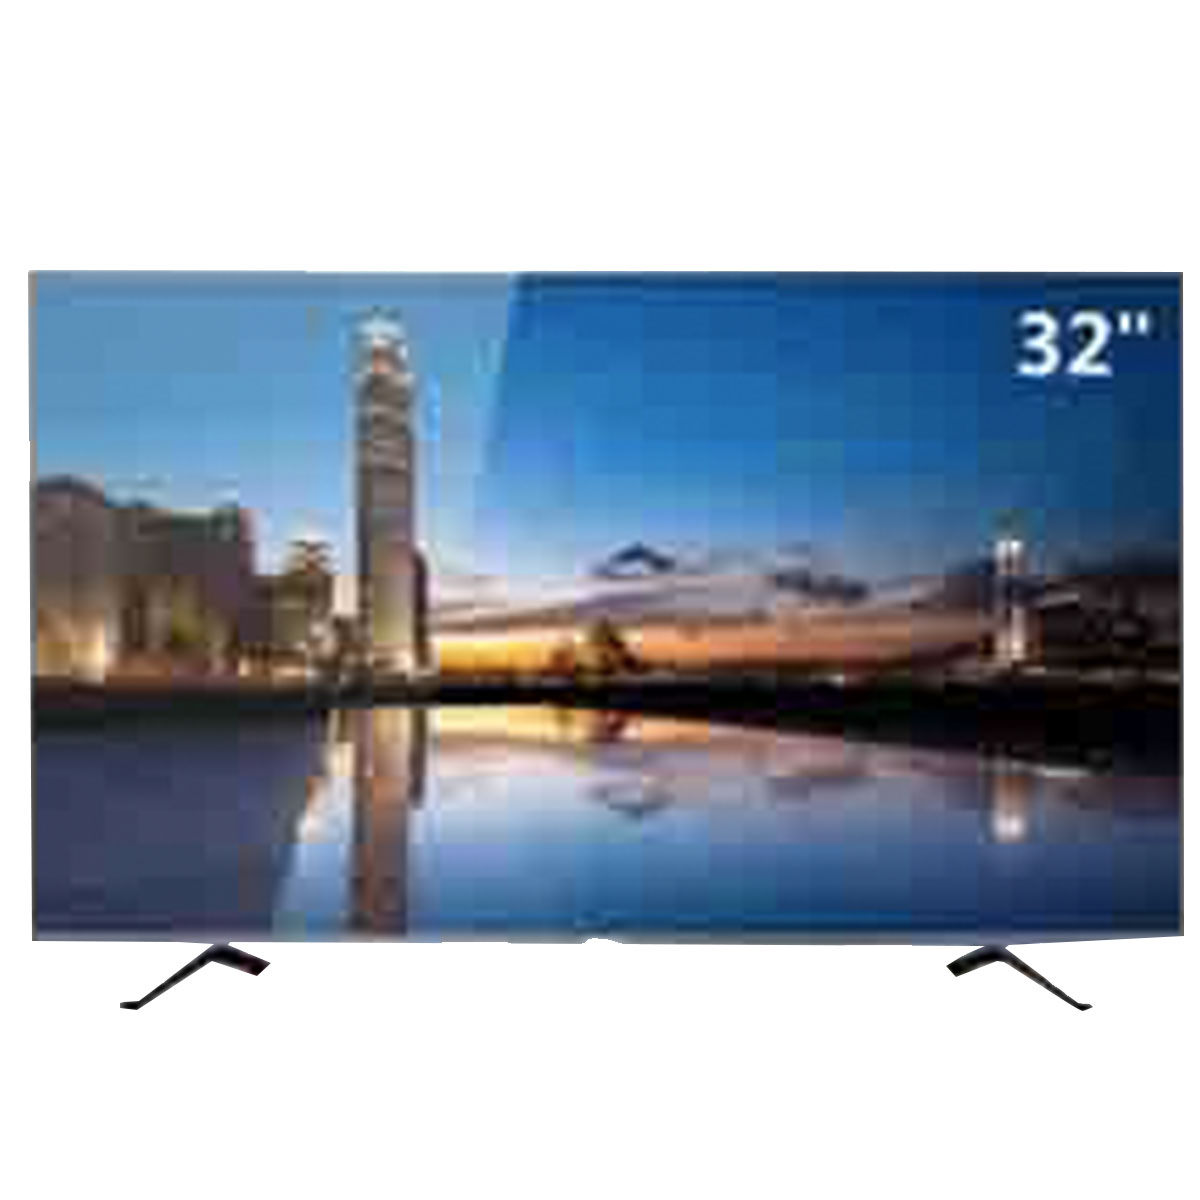 Hisense 32 Inch FHD Smart LED TV (32N2179)